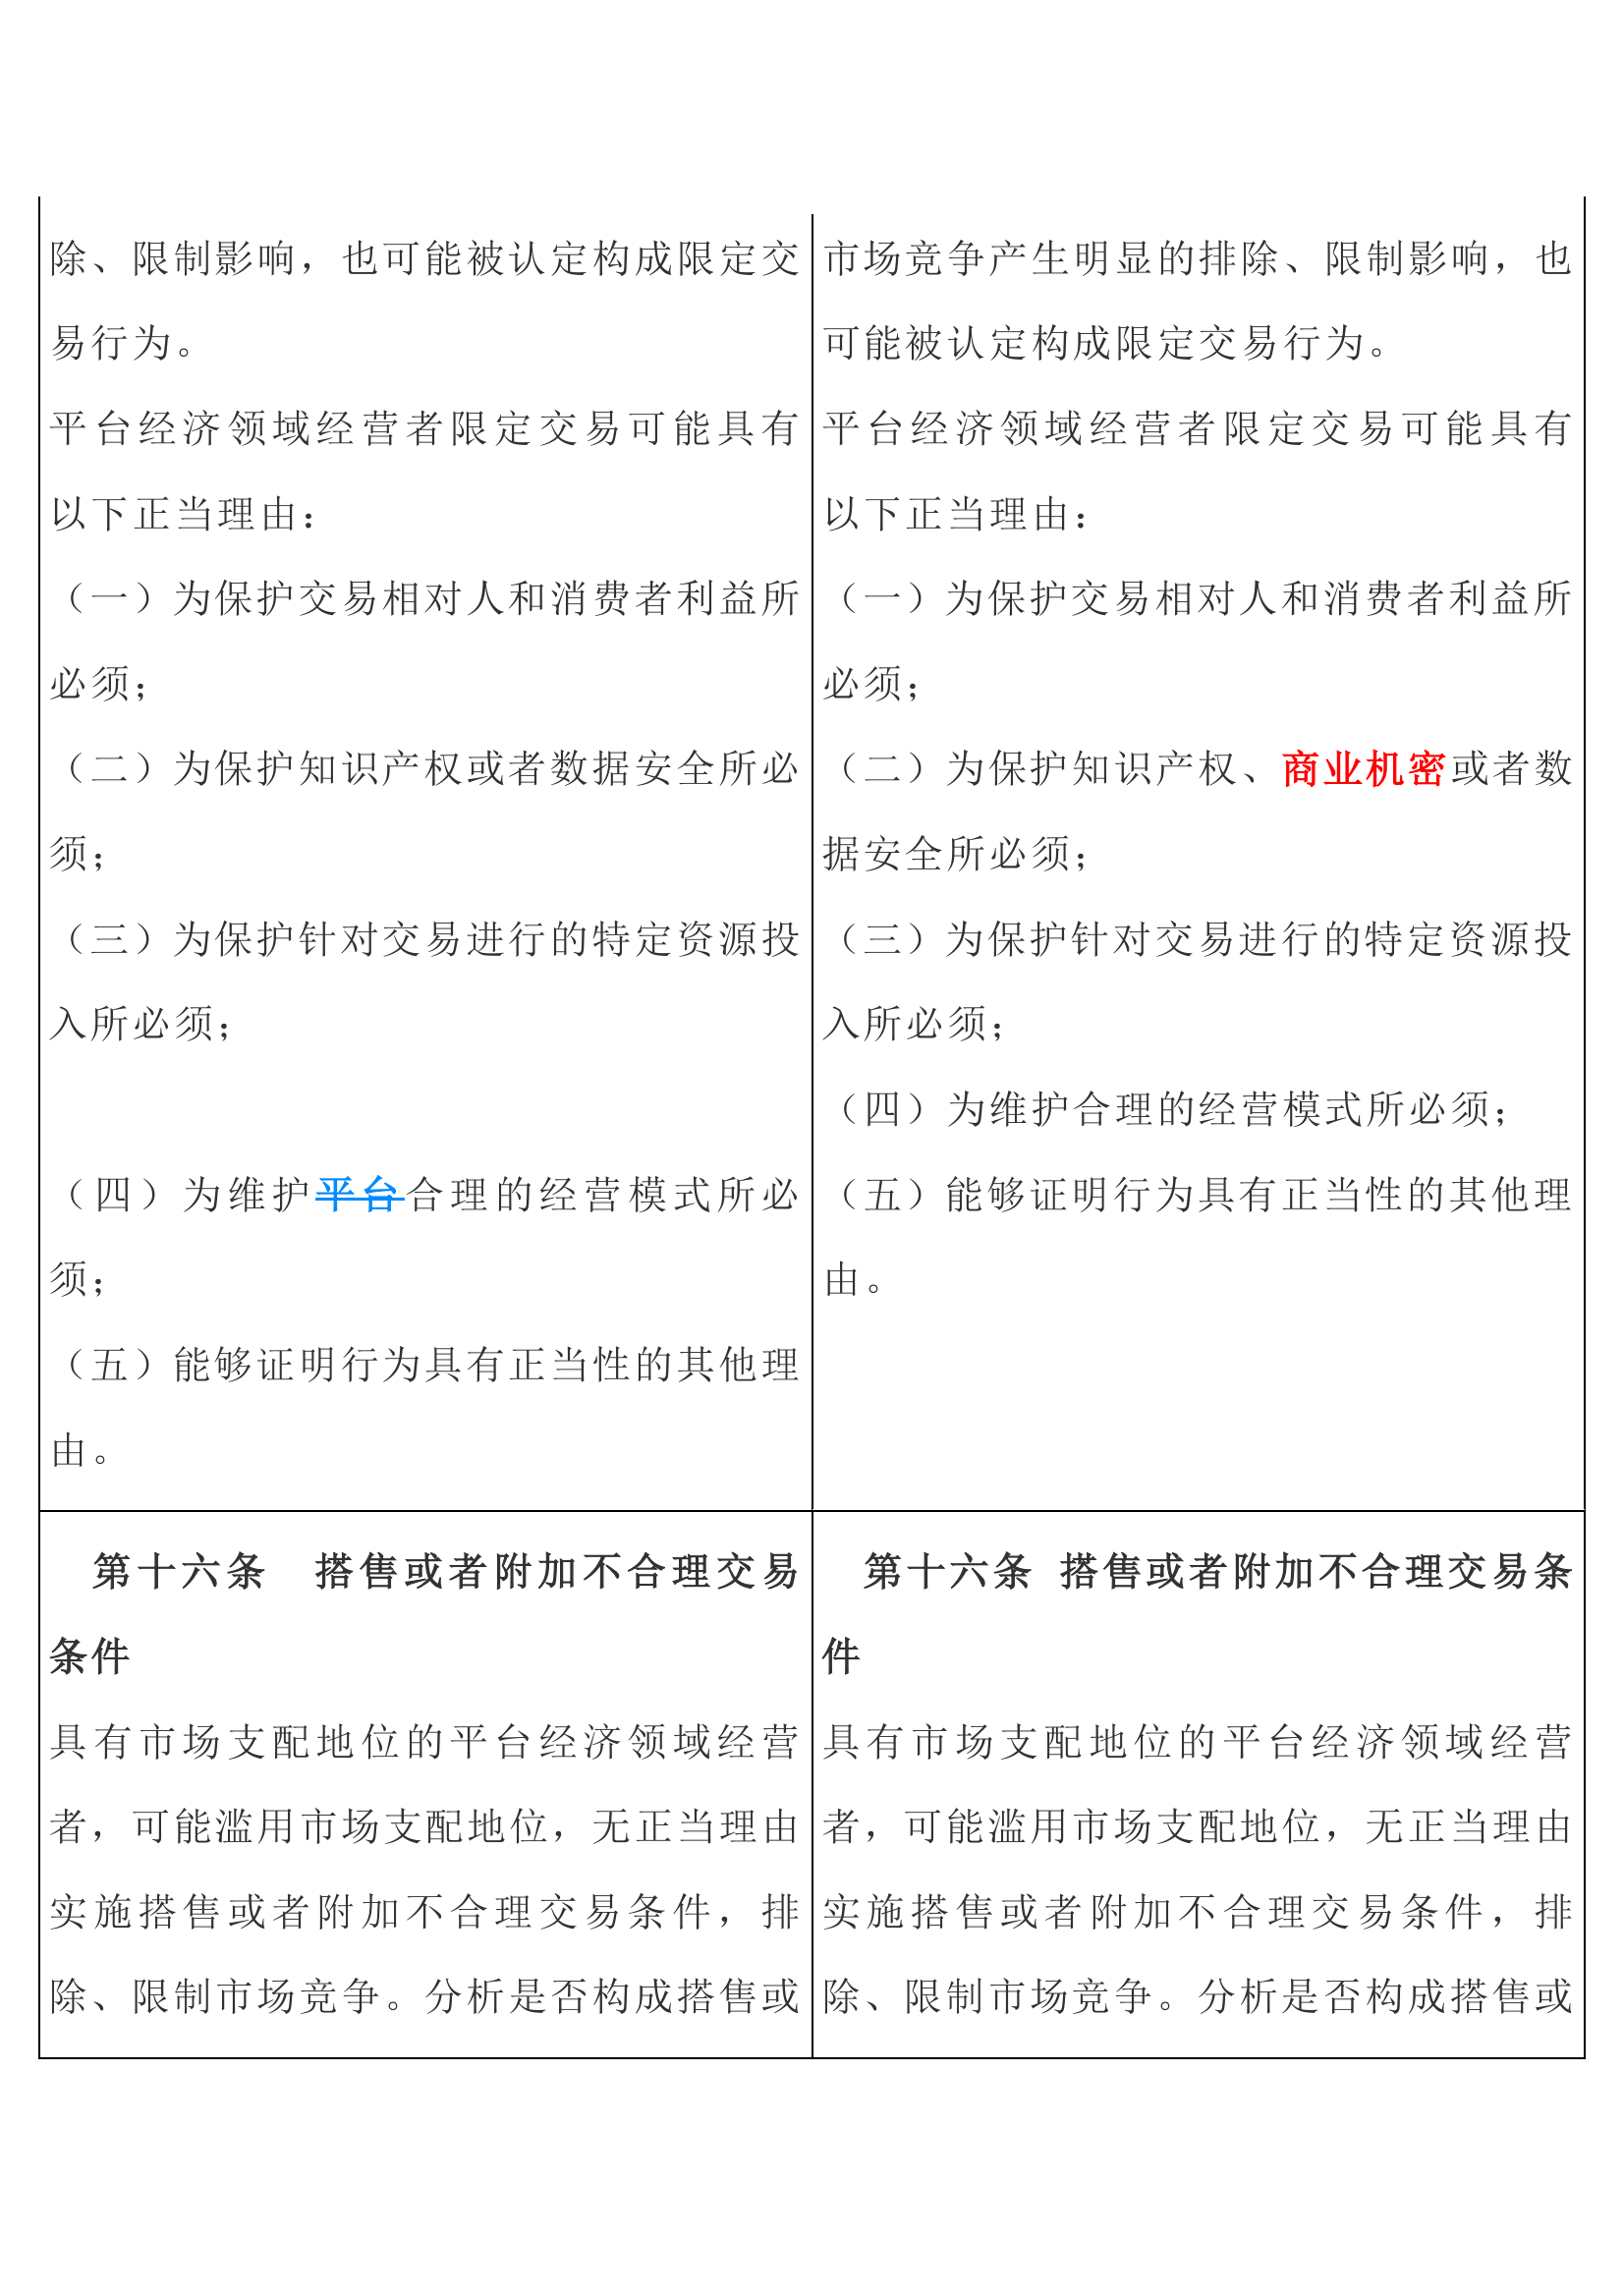 share_pdf_exportpage21(2).png